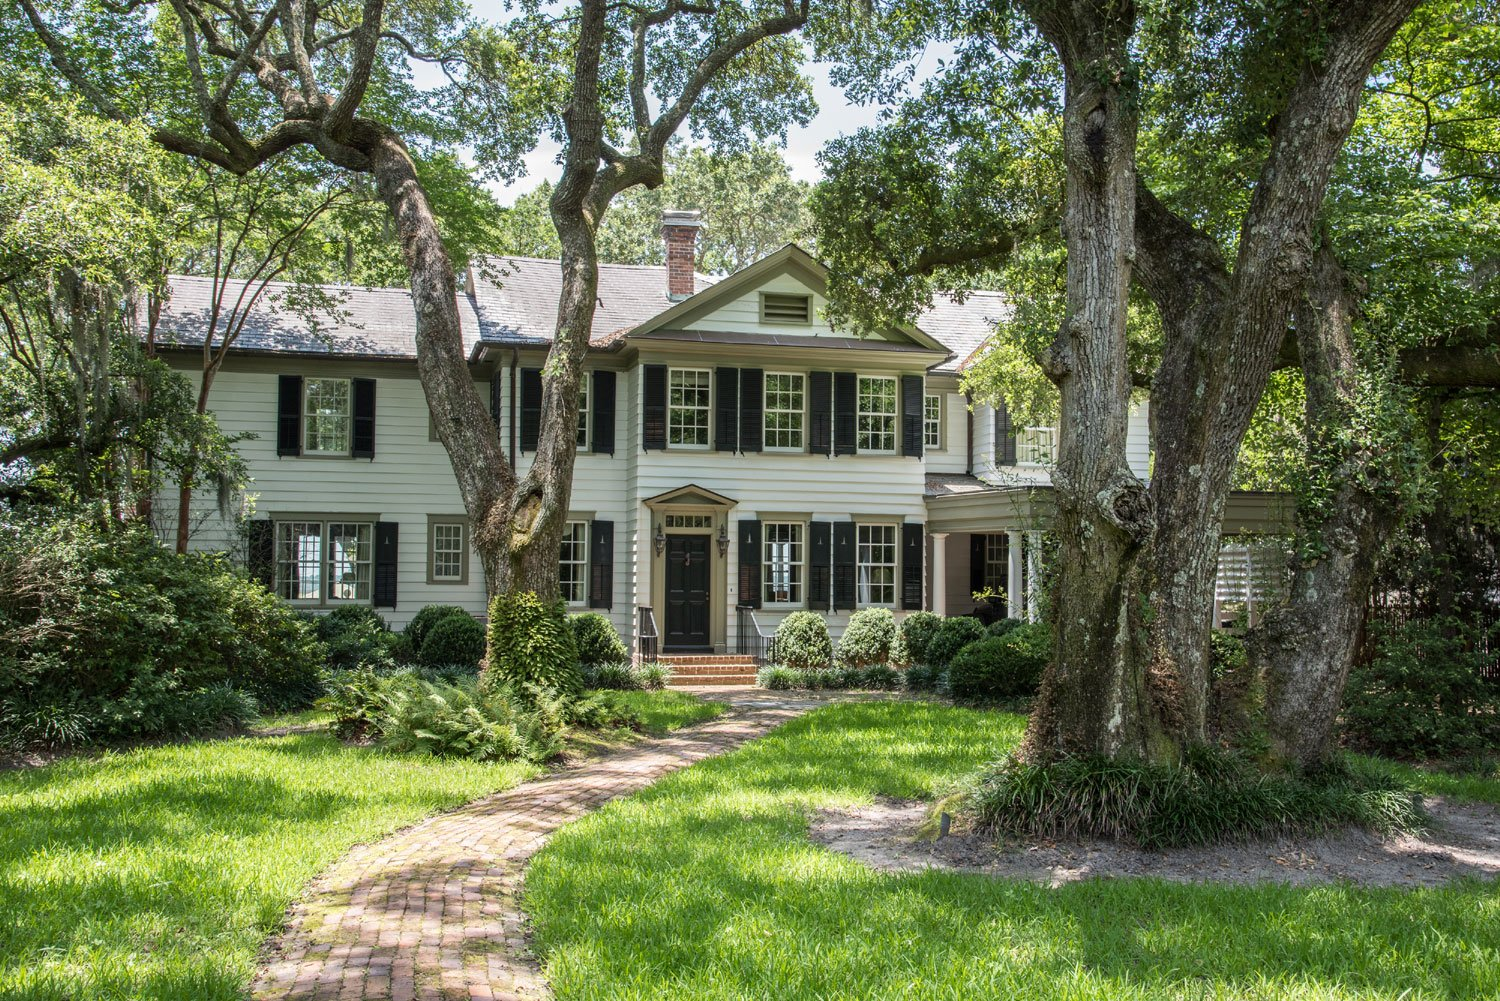 This Stono River home offers spectacular views from airy interiors with a formal living room, a vast galley kitchen, and a cedar-clad library, as well as its own private dock — and that river to dream on.